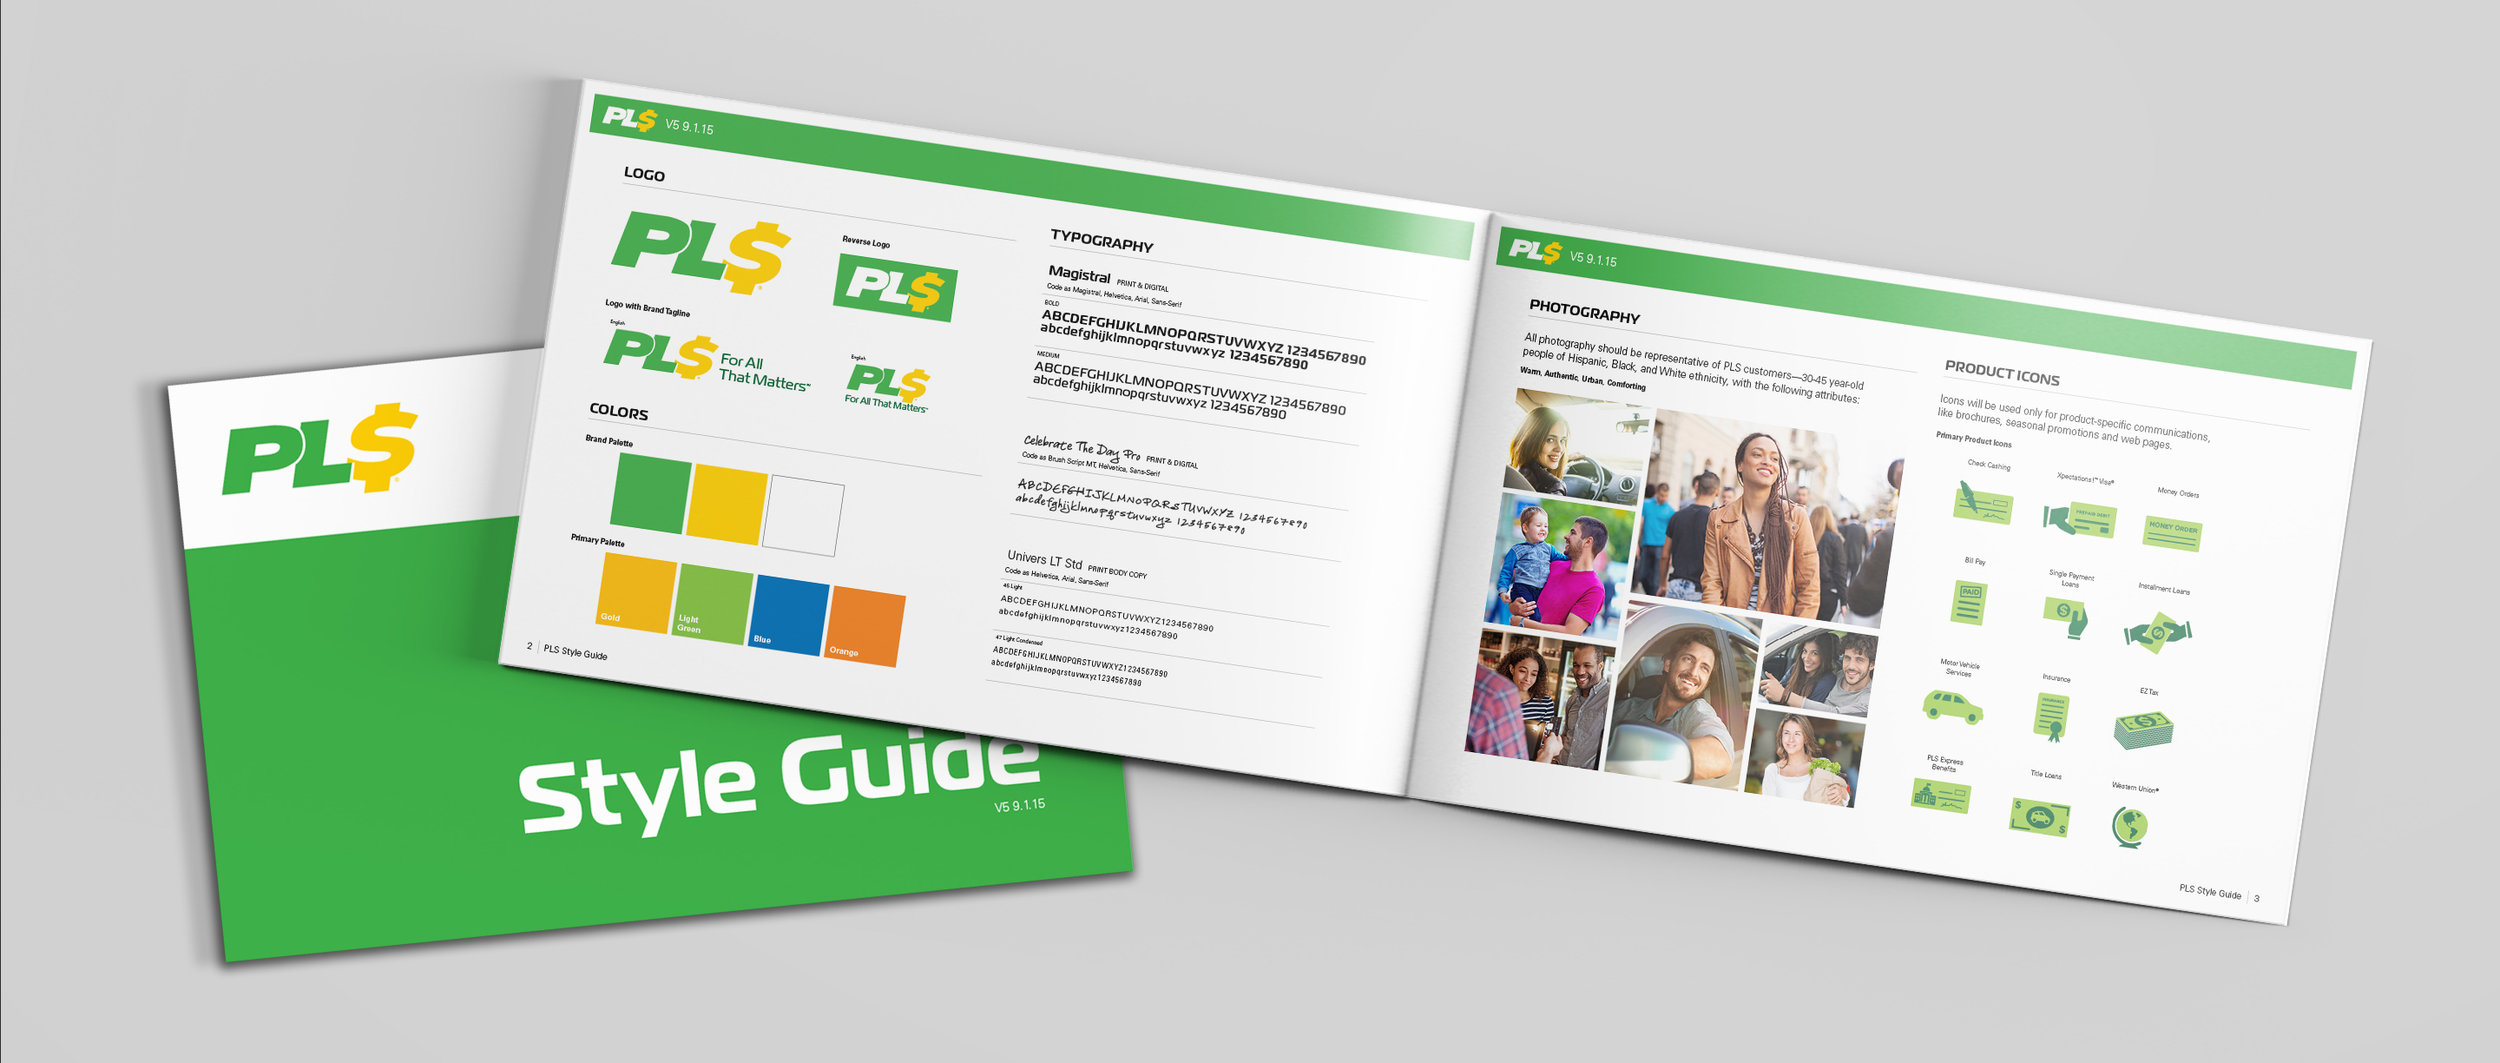 PLS Brand Guidelines: How do you build brand consistency at every touch point—from advertising, to the web, retail, and beyond? Through comprehensive brand guidelines from HERO